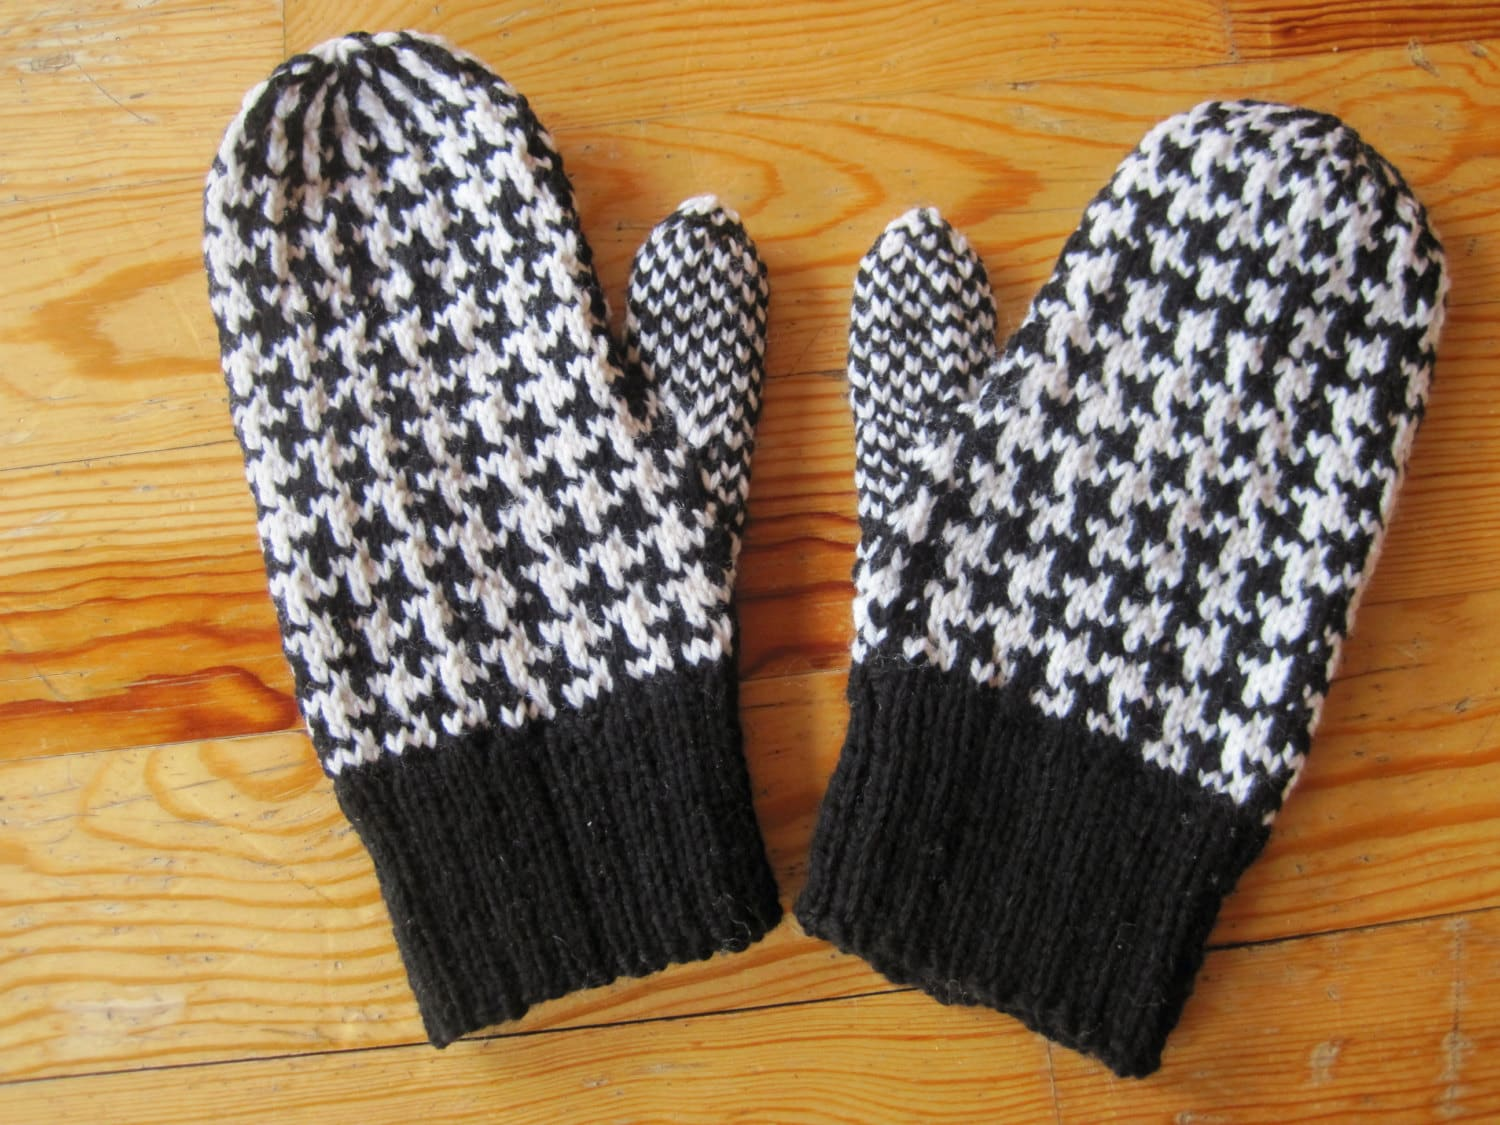 Baby Knitted Blankets Patterns : Wool Mittens Double Knit Black and White Dogstooth Pattern